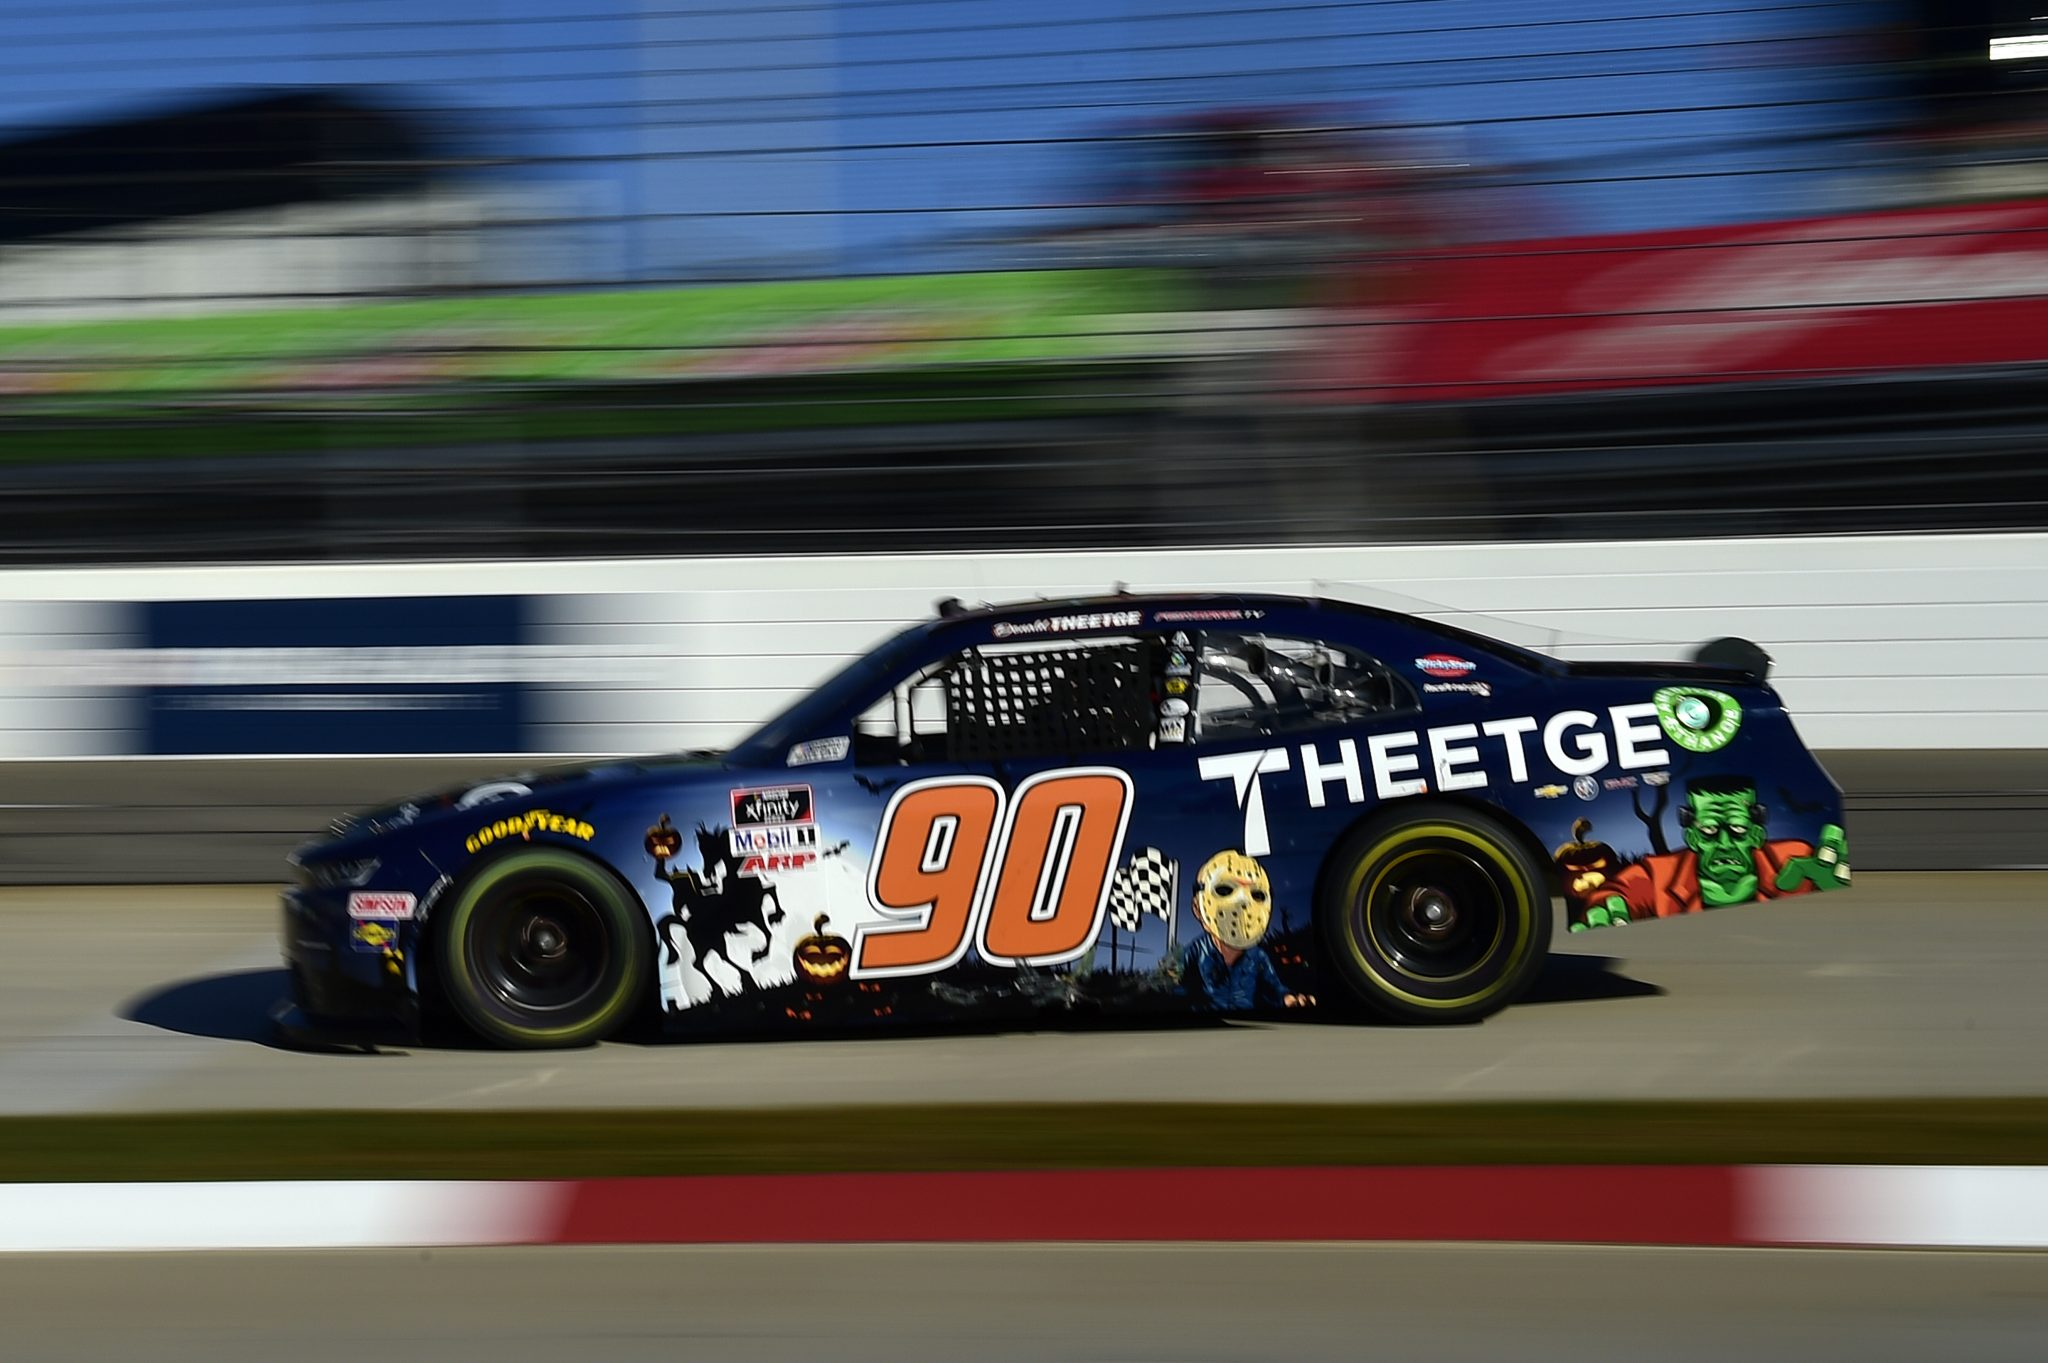 MARTINSVILLE, VIRGINIA - OCTOBER 31: Donald Theetge, driver of the #90 Theetge Chevrolet Chevrolet, drives during the NASCAR Xfinity Series Draft Top 250 at Martinsville Speedway on October 31, 2020 in Martinsville, Virginia. (Photo by Jared C. Tilton/Getty Images) | Getty Images